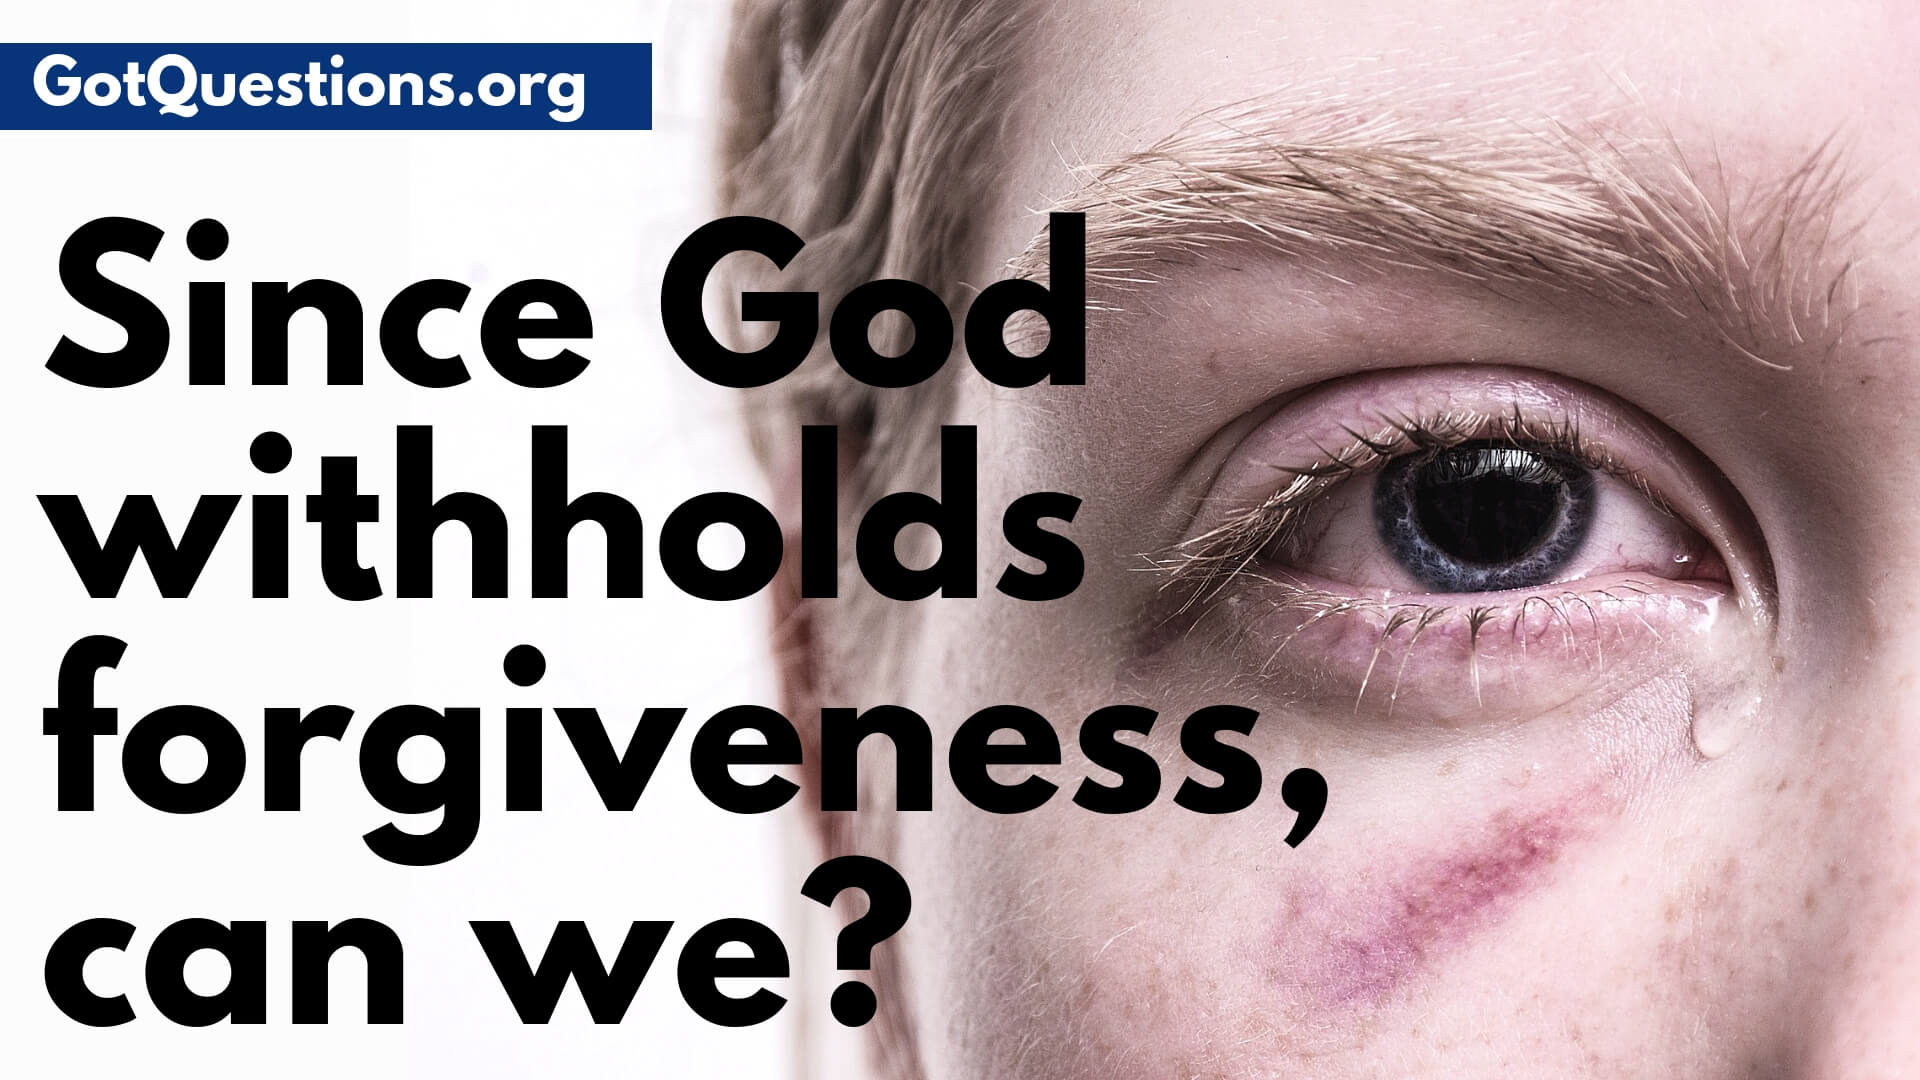 since god withholds forgiveness, can we?